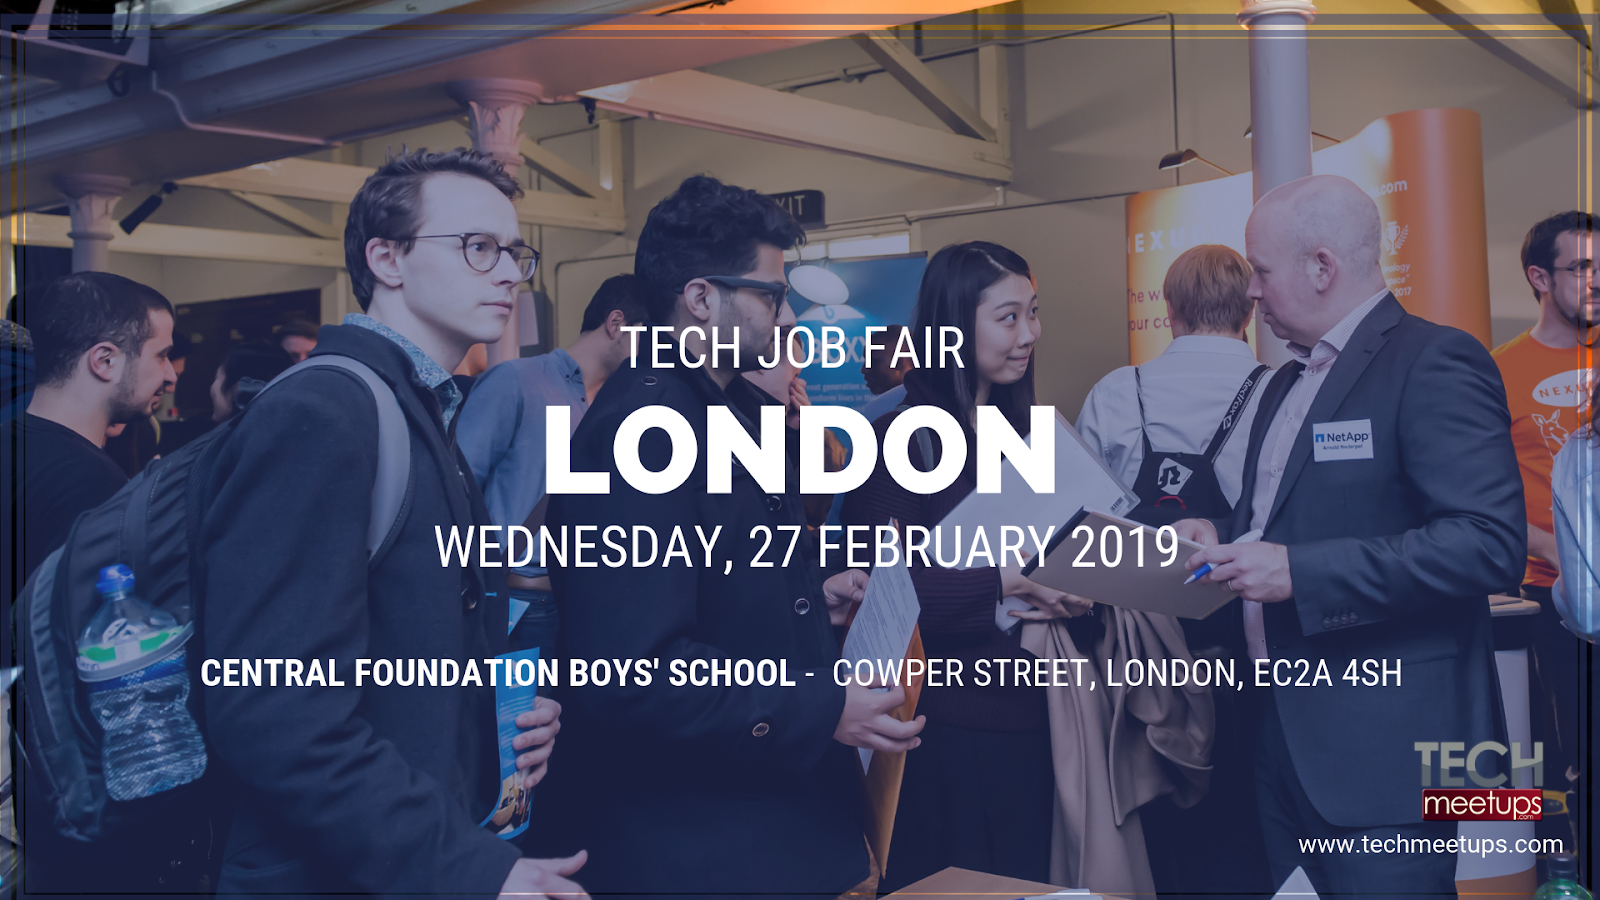 london tech job fair